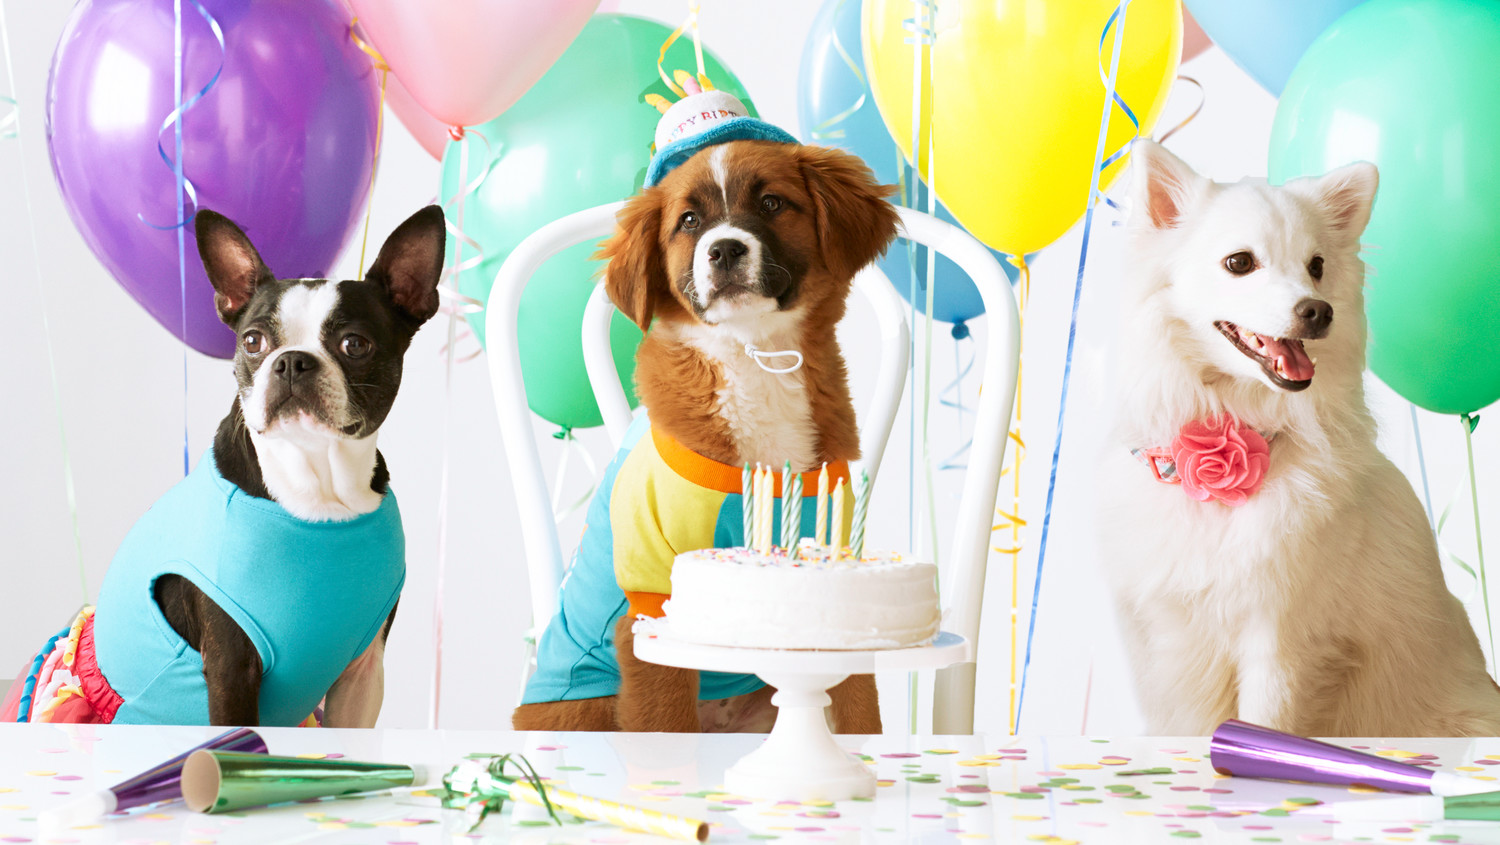 Dog party with balloons and cake